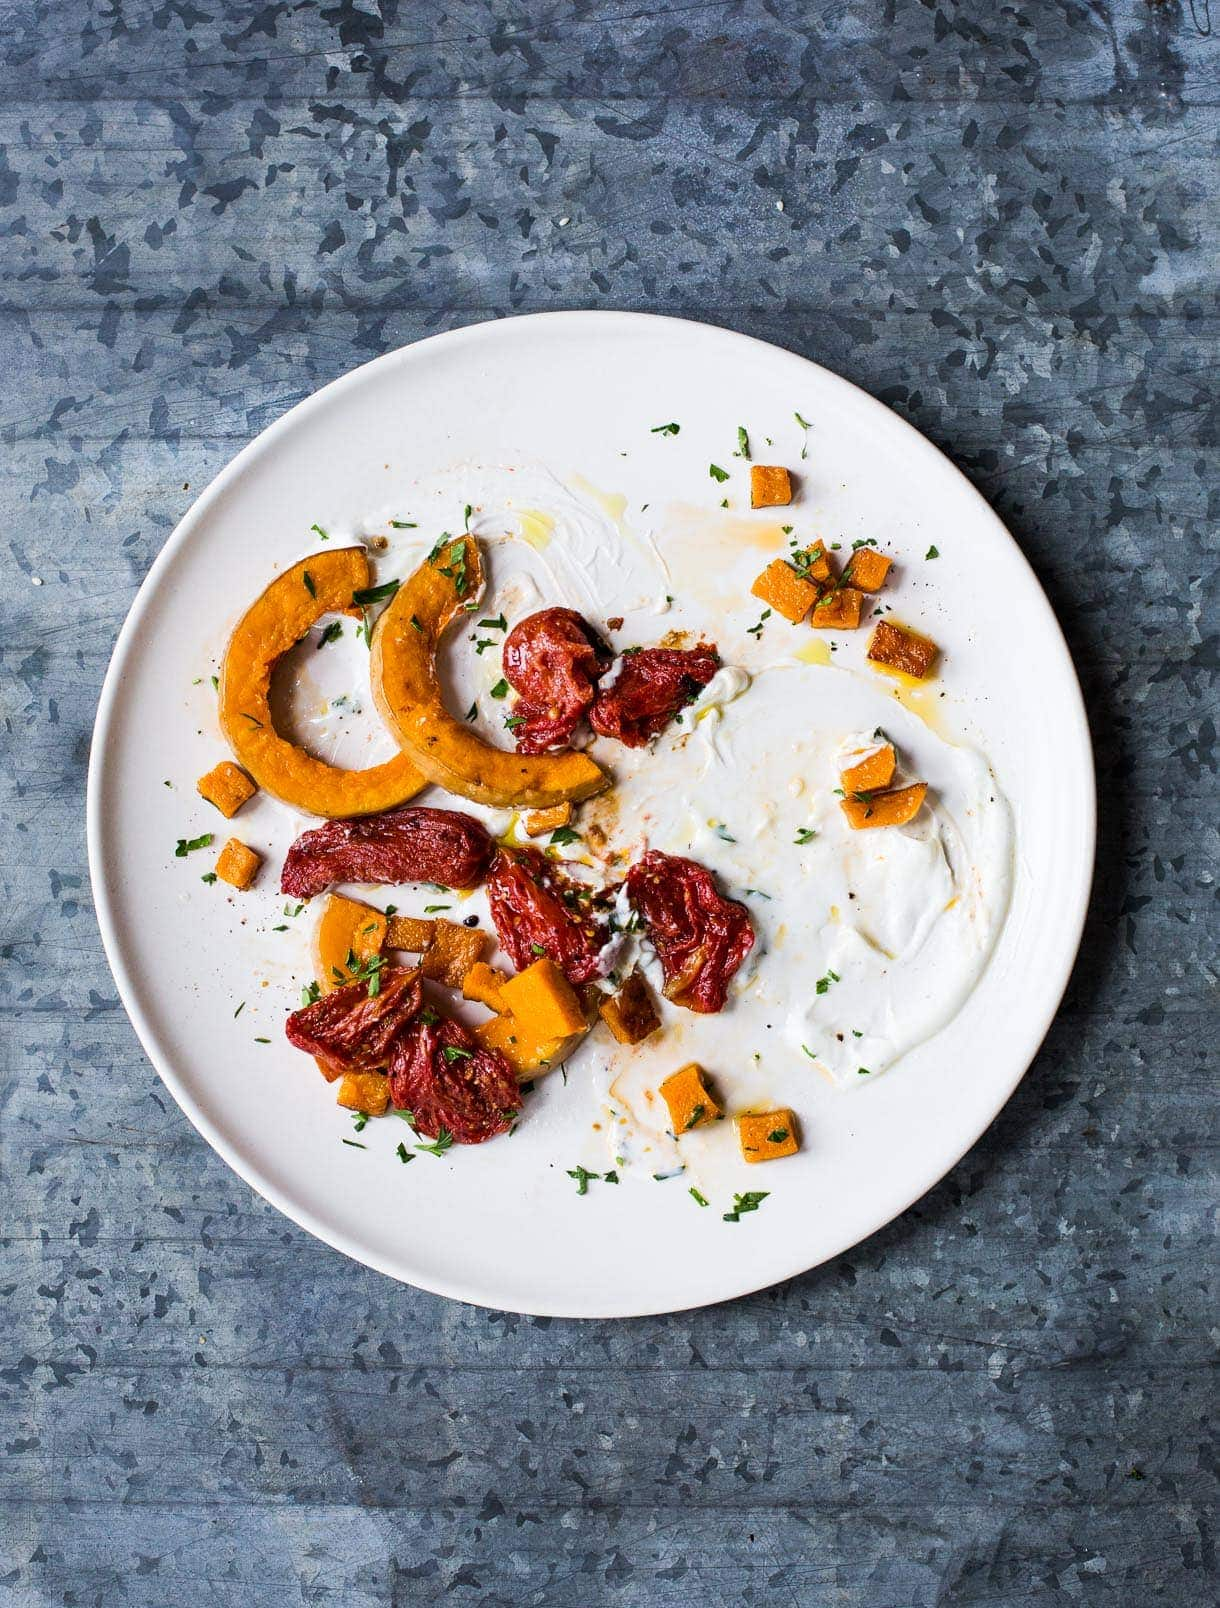 Roasted Tomatoes and Butternut Squash with Cardamom Yogurt Sauce